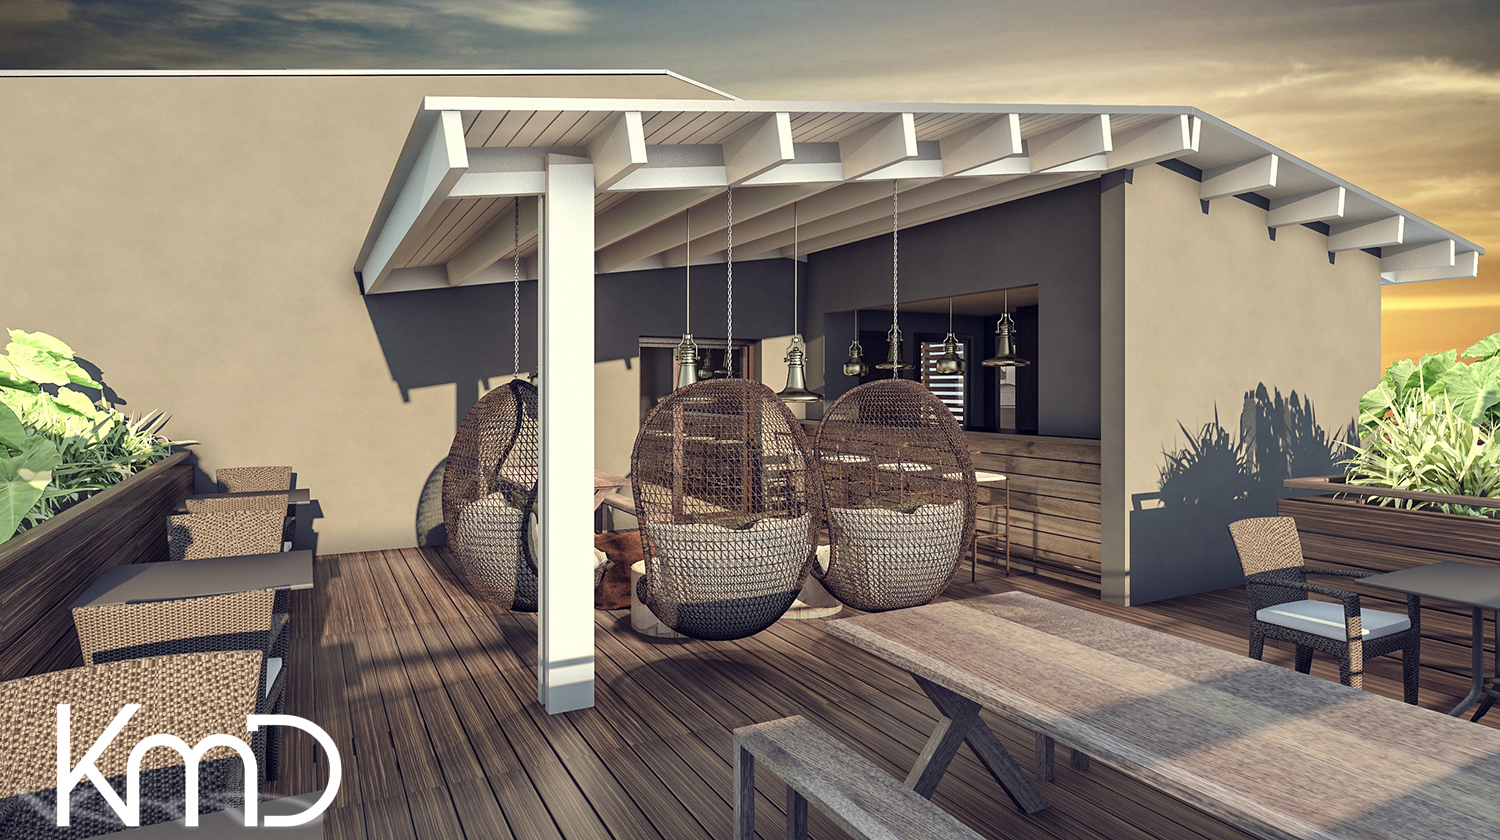 3D Rendering hotel south africa durban cape town johannesburg